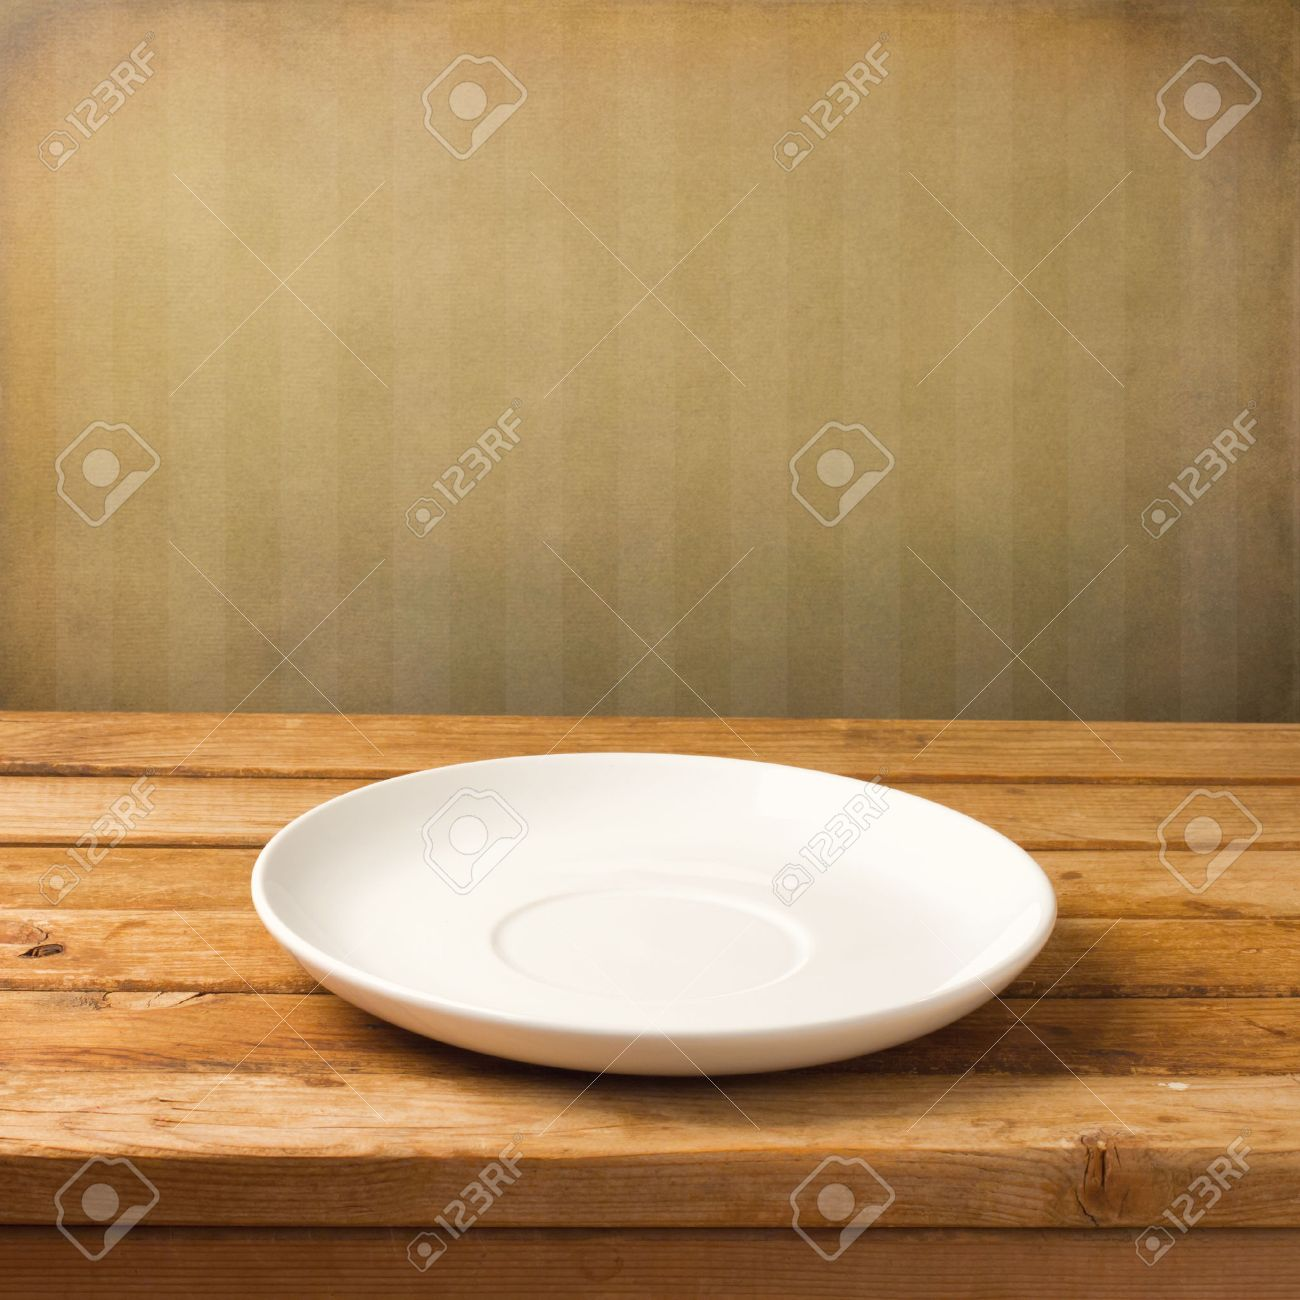 Empty White Plate On Wooden Table Over Grunge Striped Wallpaper Stock Photo Picture And Royalty Free Image Image 39478555